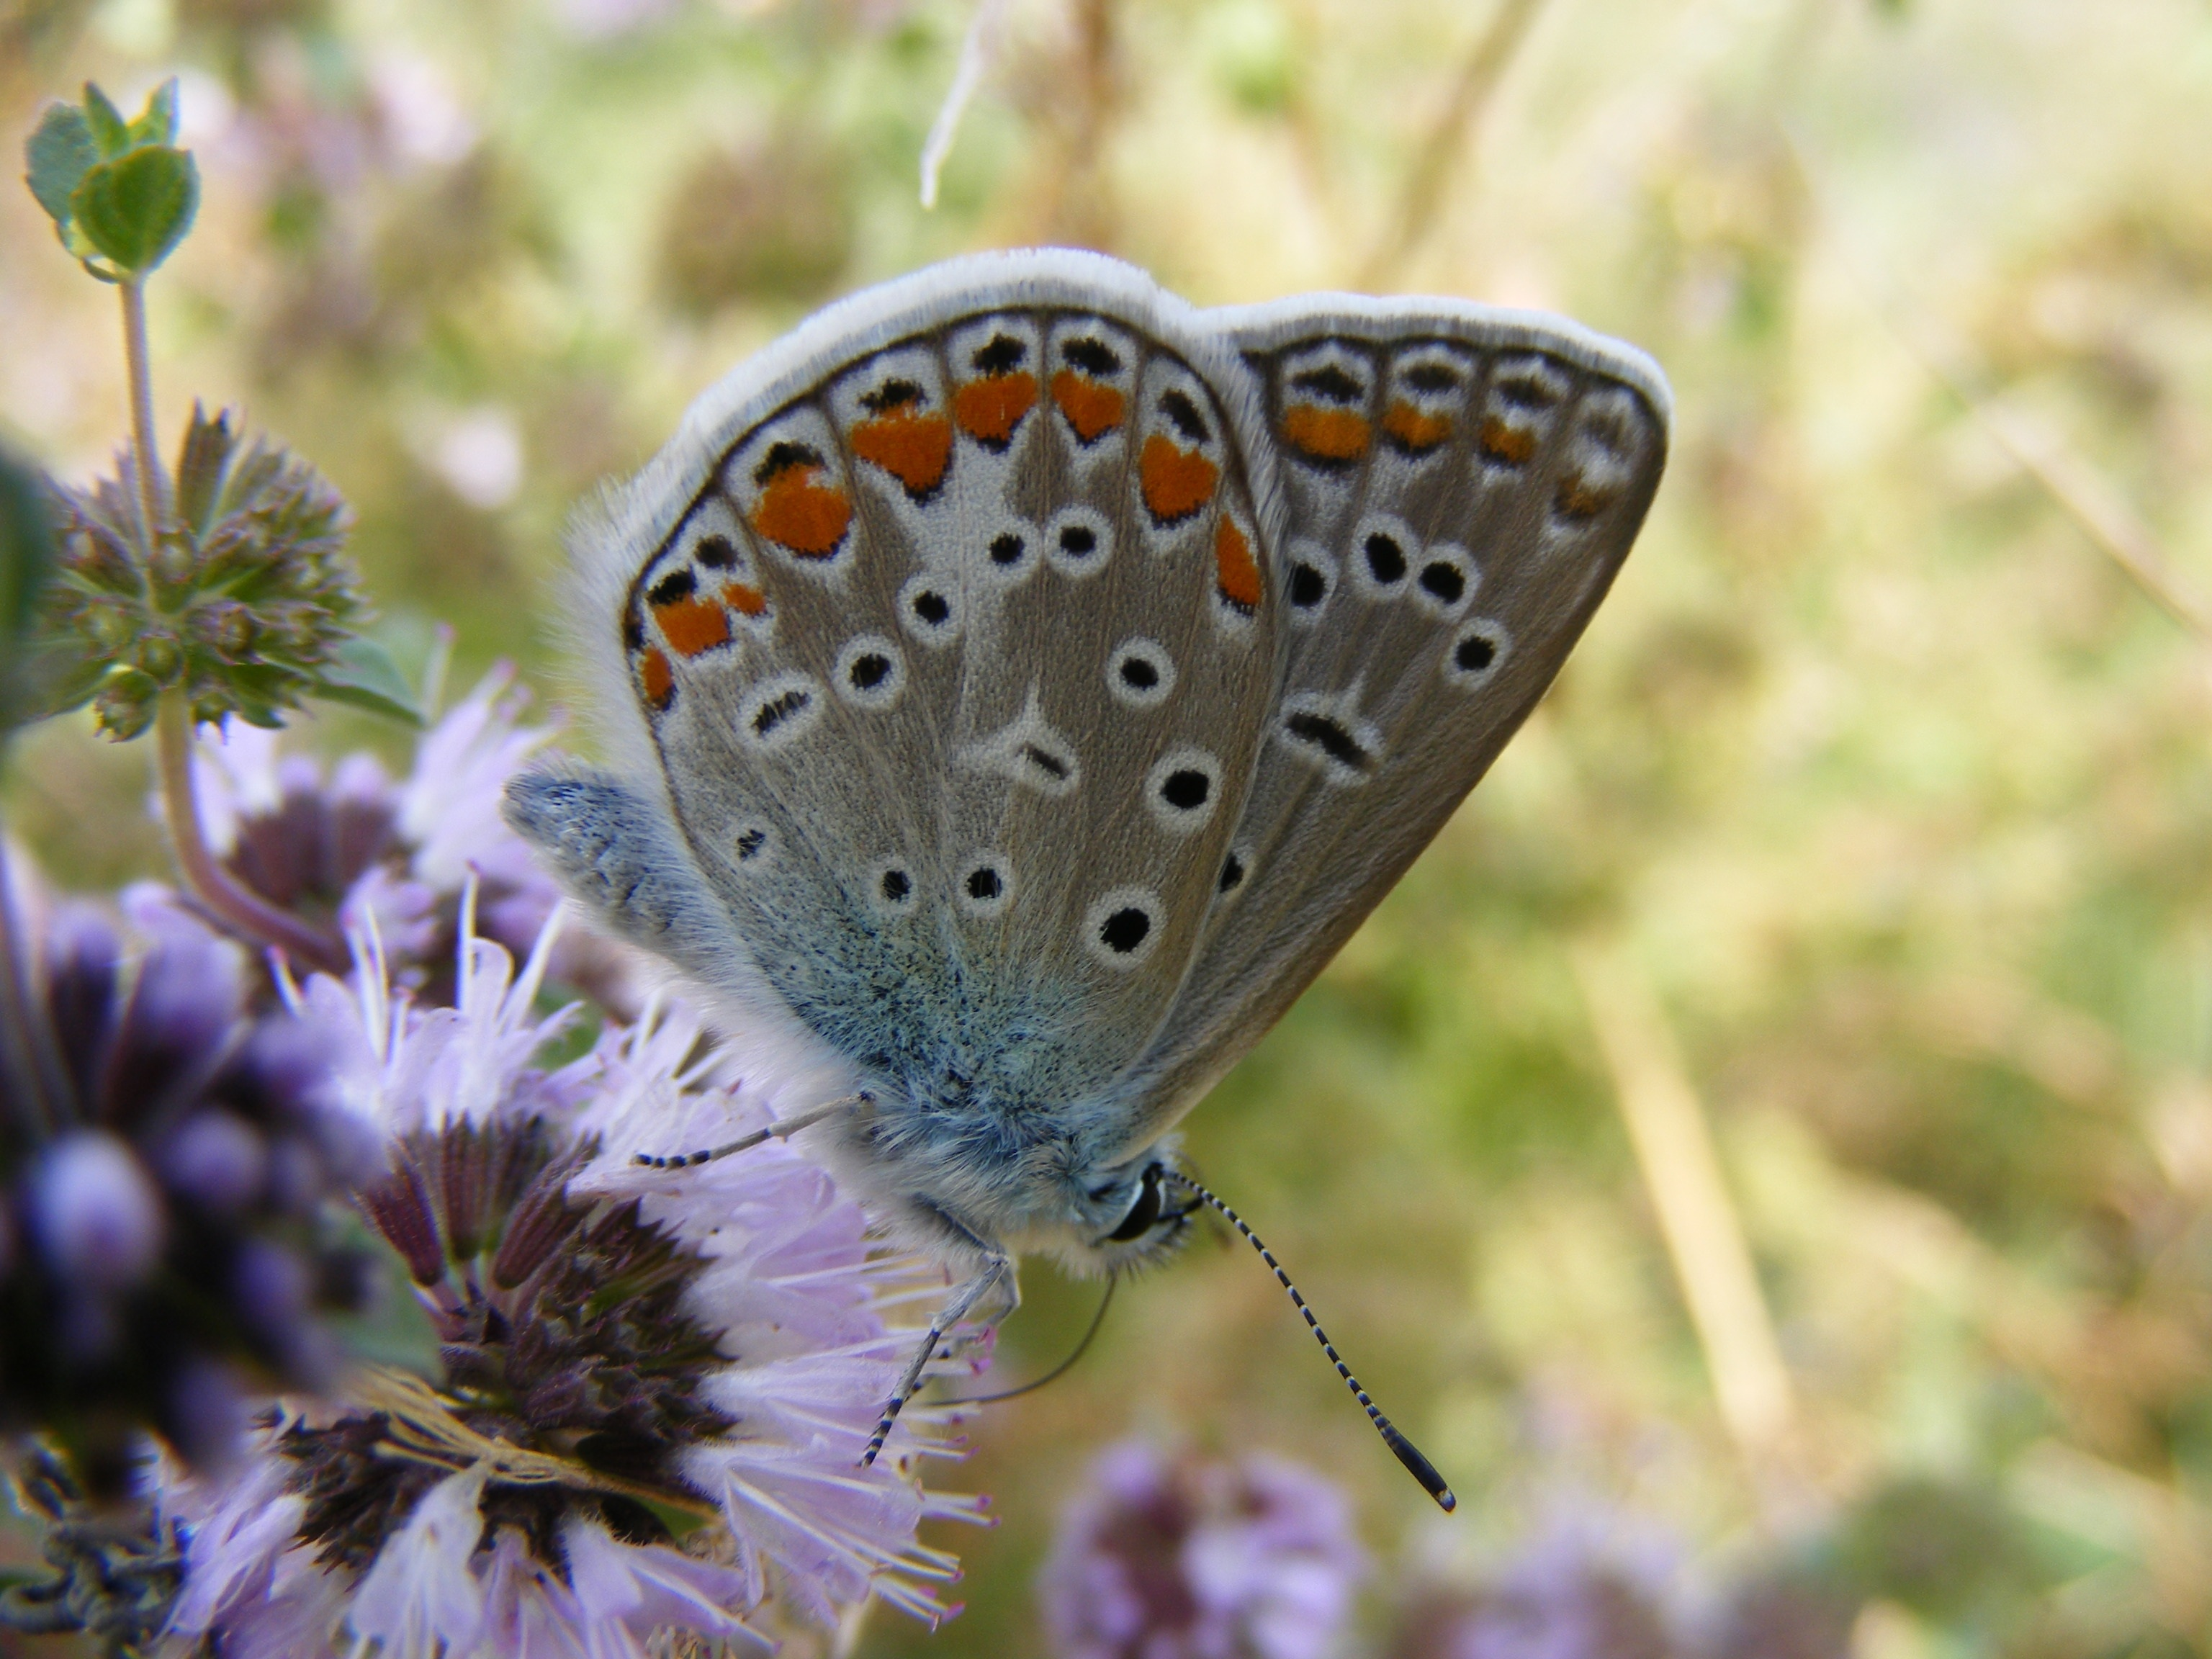 Beauty of Nature, Animal, Butterfly, Fly, Insect, HQ Photo